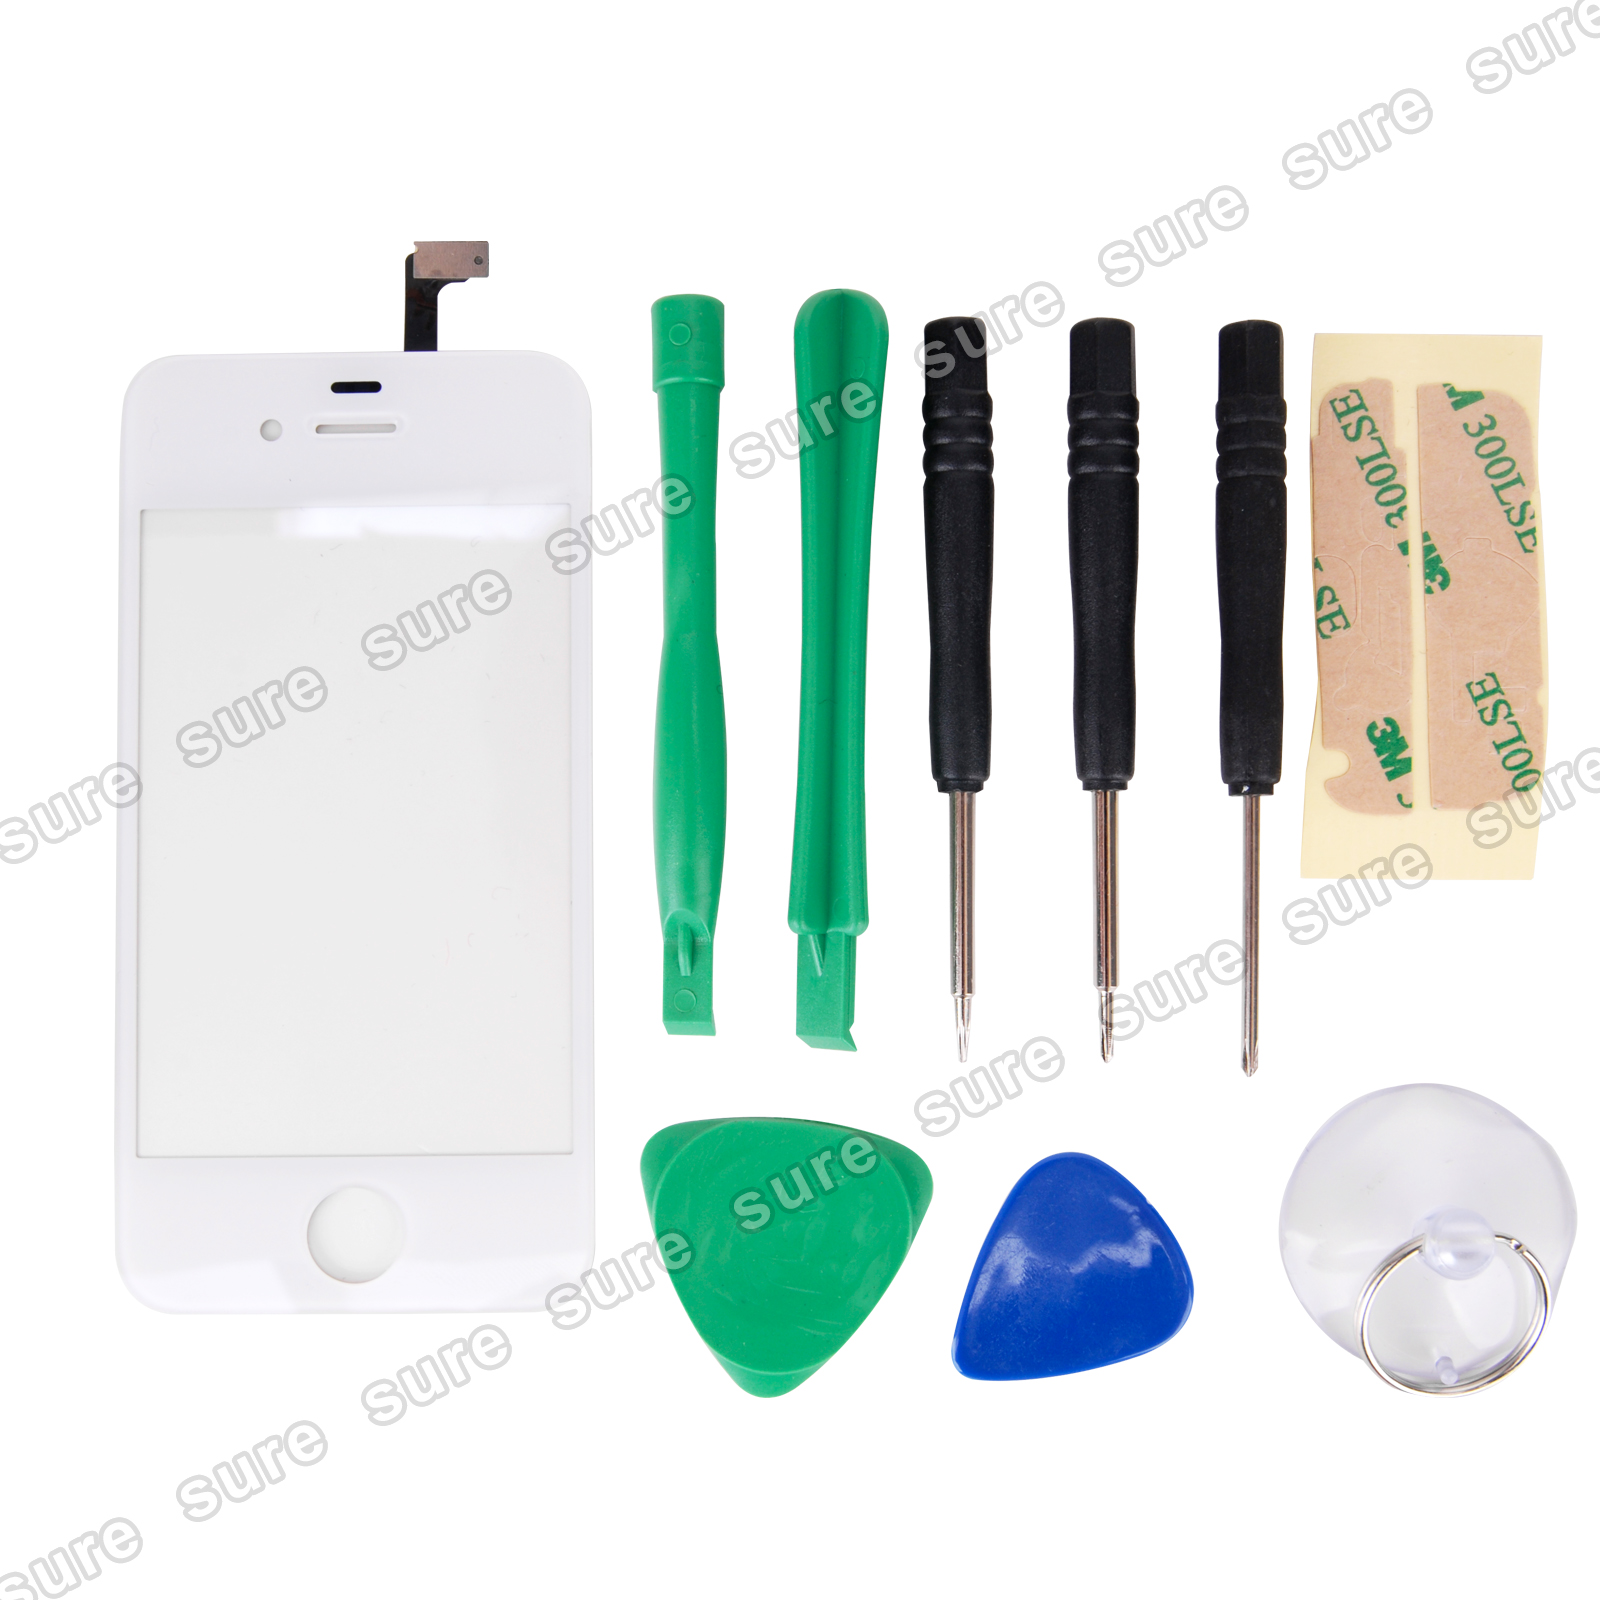 Front-Touch-Glass-Screen-Replacement-Repair-For-Apple-iPhone-4-Tool-kits-White